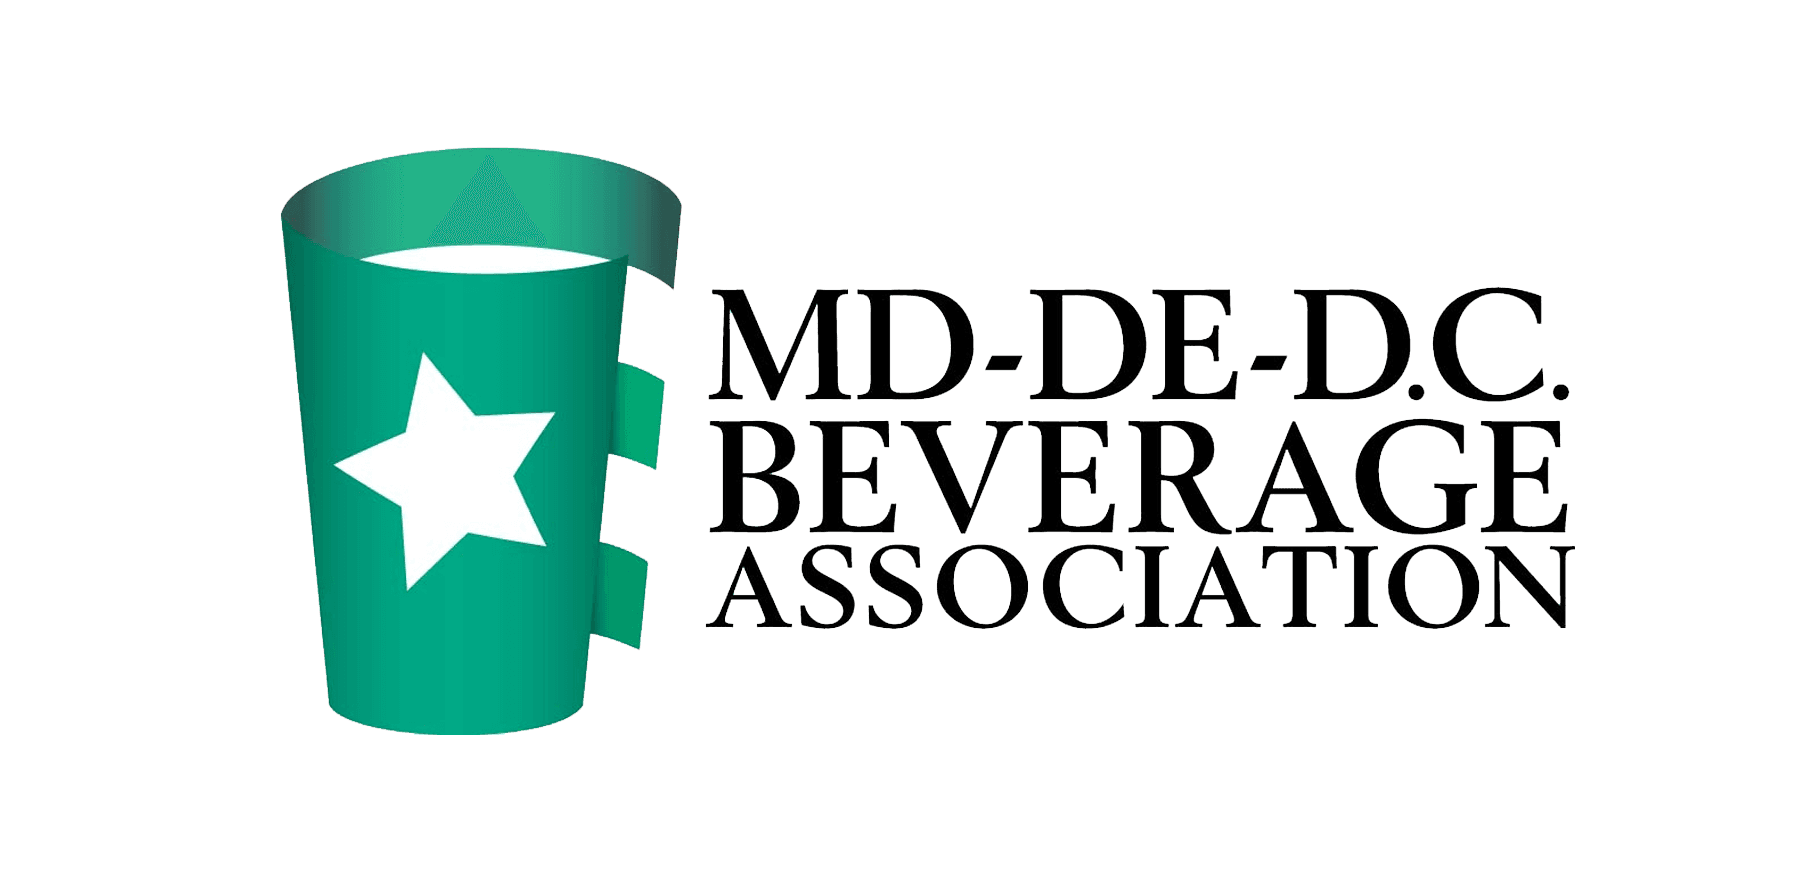 MD,DE,DC Beverage Association